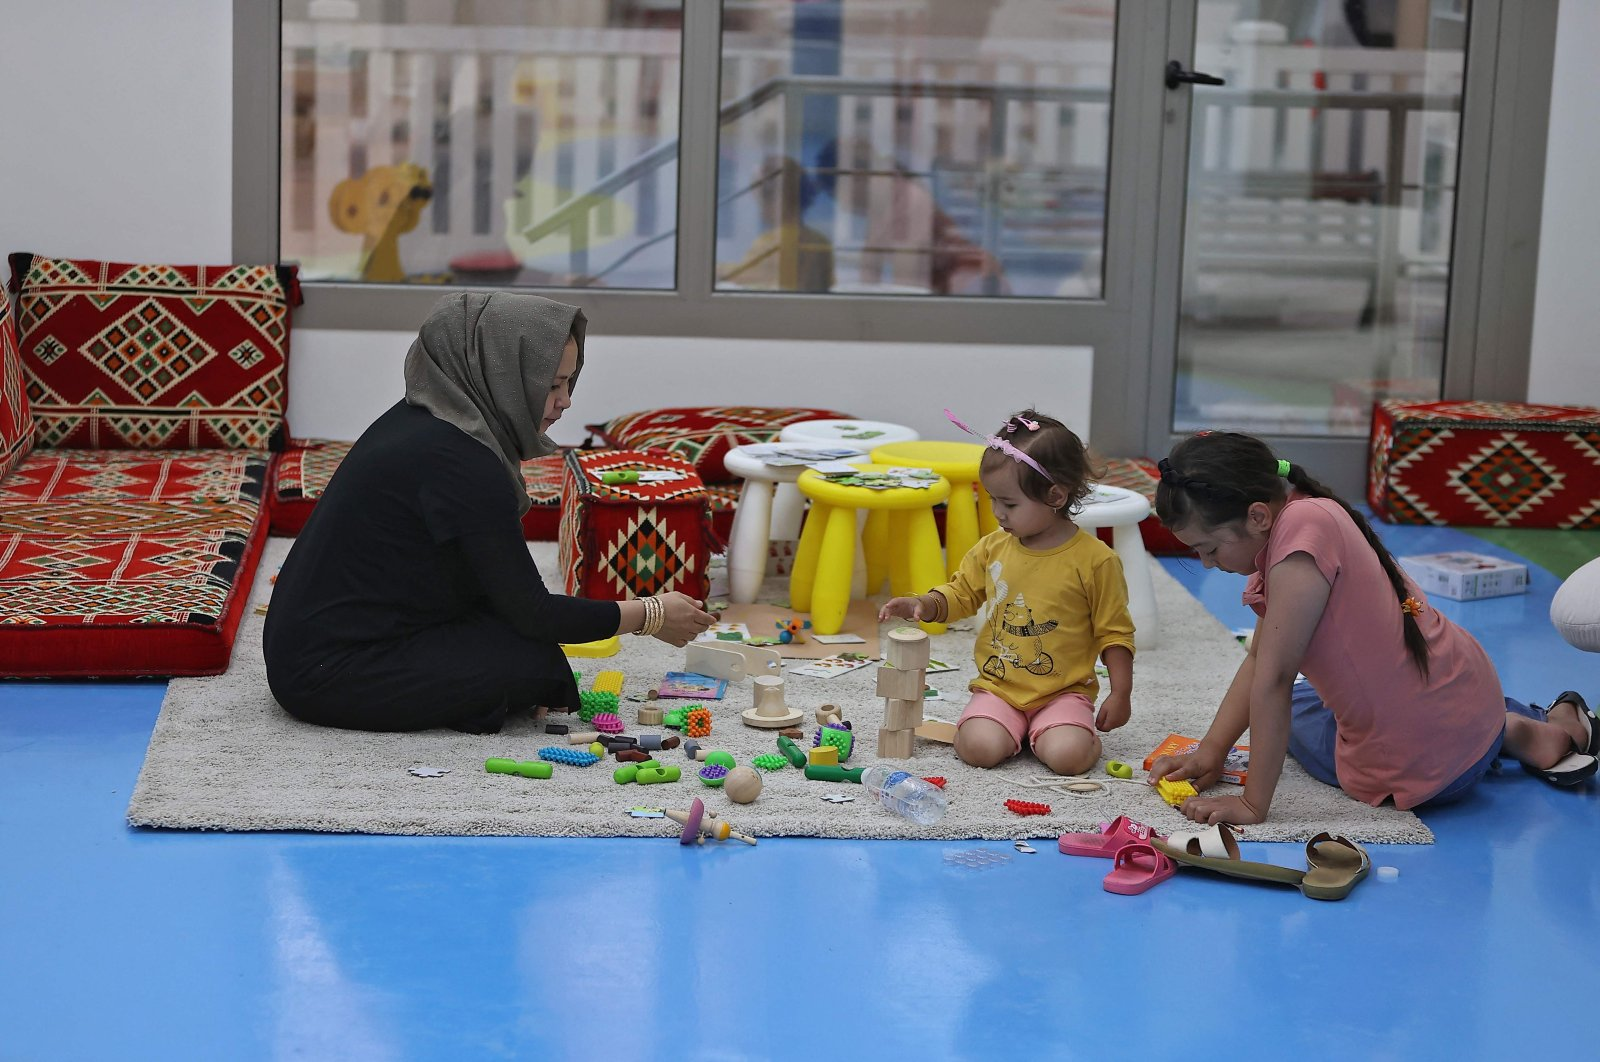 Afghan refugee children play at an indoor space near their accommodation at Park View Villas, a Qatar's 2022 FIFA World Cup residence designated to host the event's organizing committee, transformed into a housing center for Afghan refugees, in Doha, Qatar, Sept. 2, 2021. (AFP Photo)